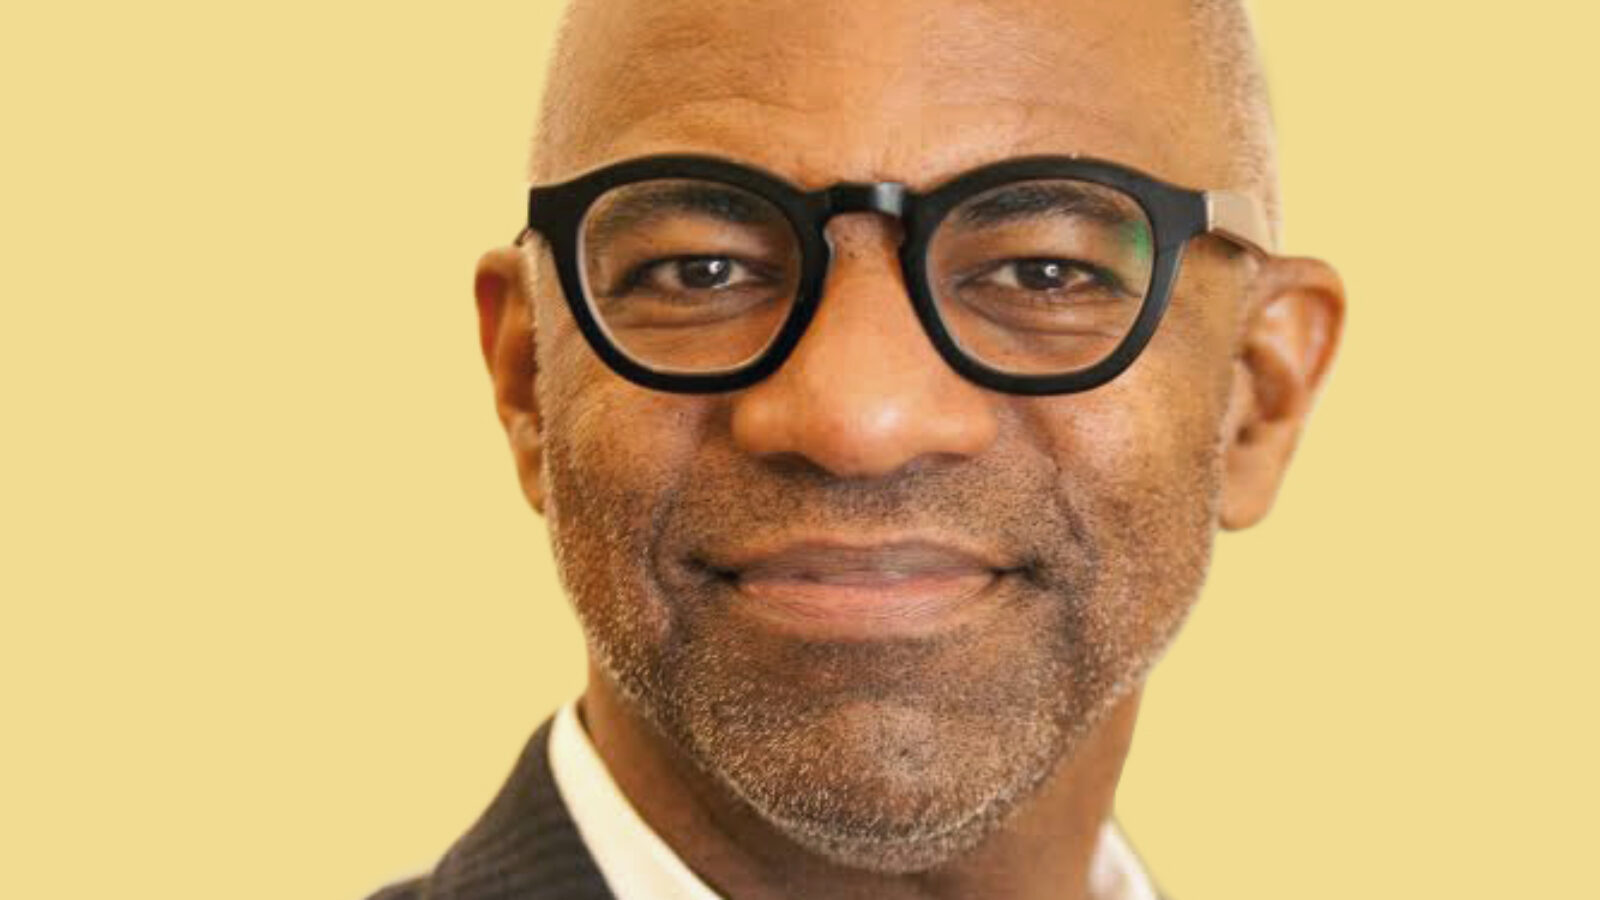 Longtime executive Tony Coles on biotech, racism, and opportunities for change